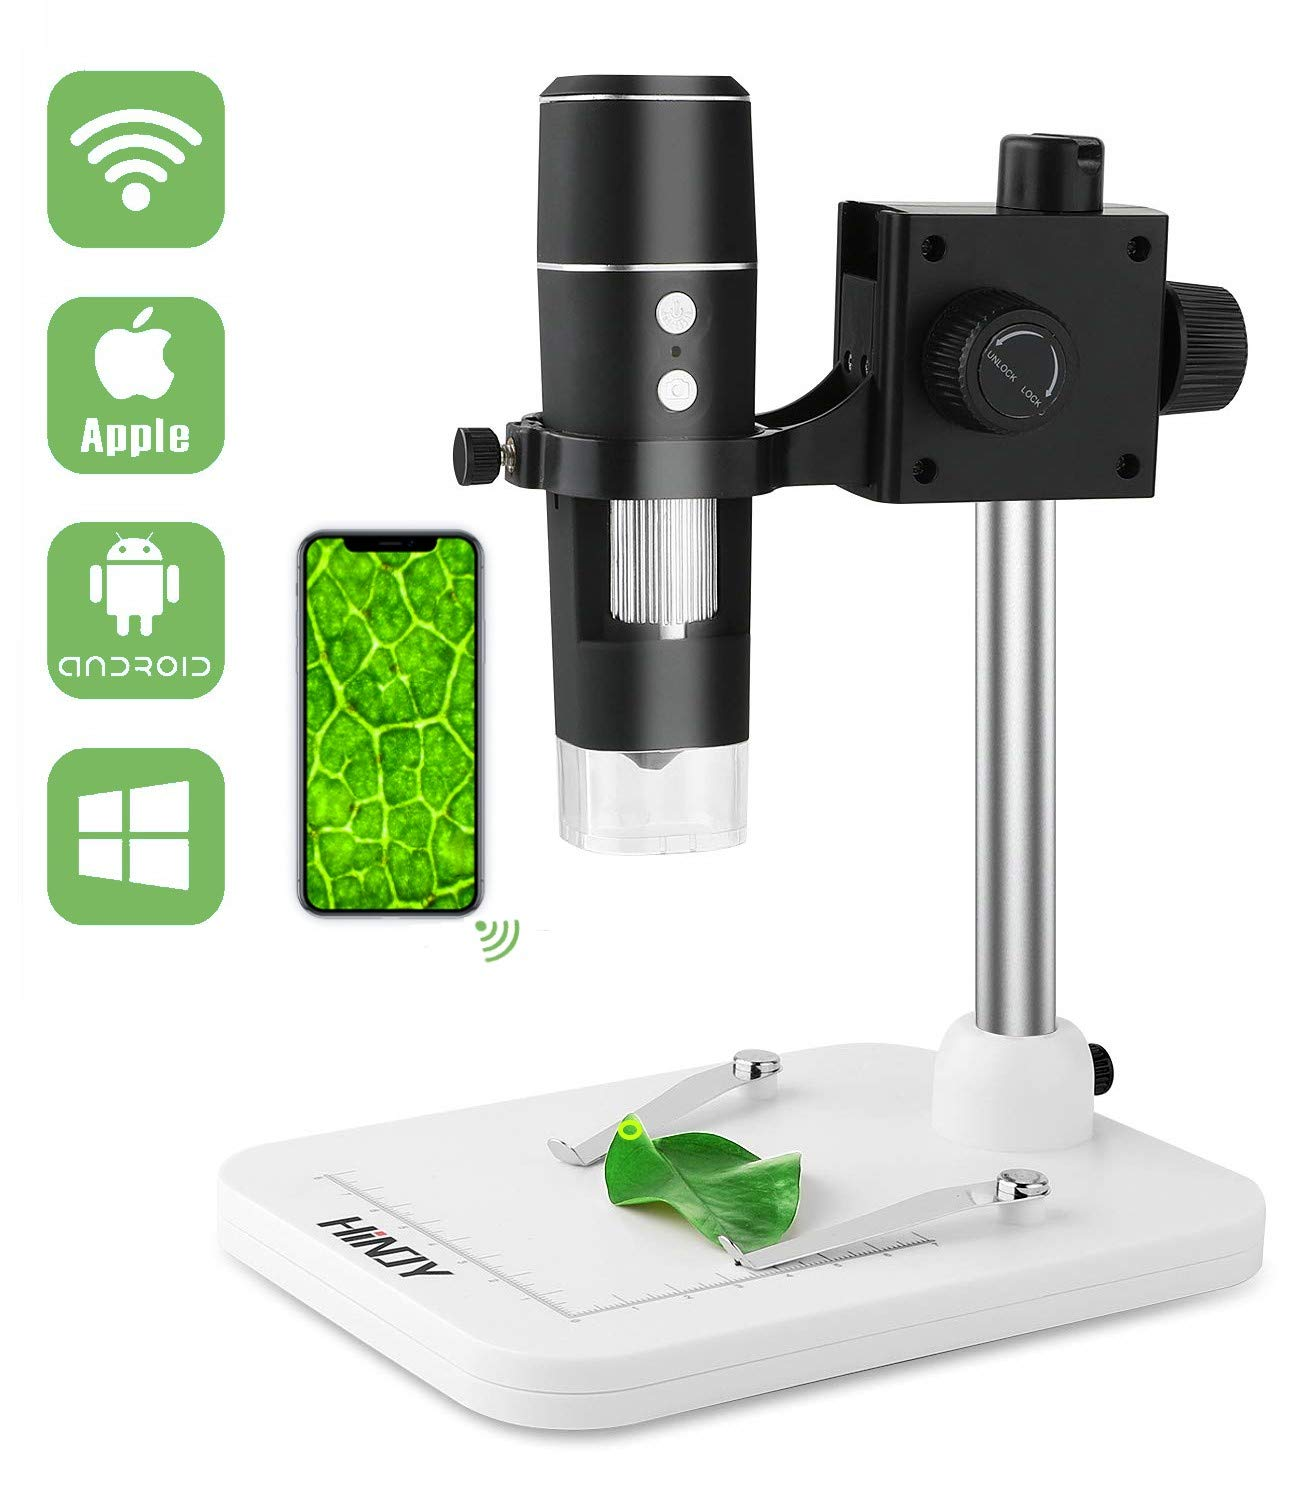 WiFi USB Microscope, HINOY Wireless Digital Mini Microscope Camera 2MP 1080p HD 50 to 1000x Magnification Students Endoscope for iPhone, Android, Windows & MAC Devices by HINOY